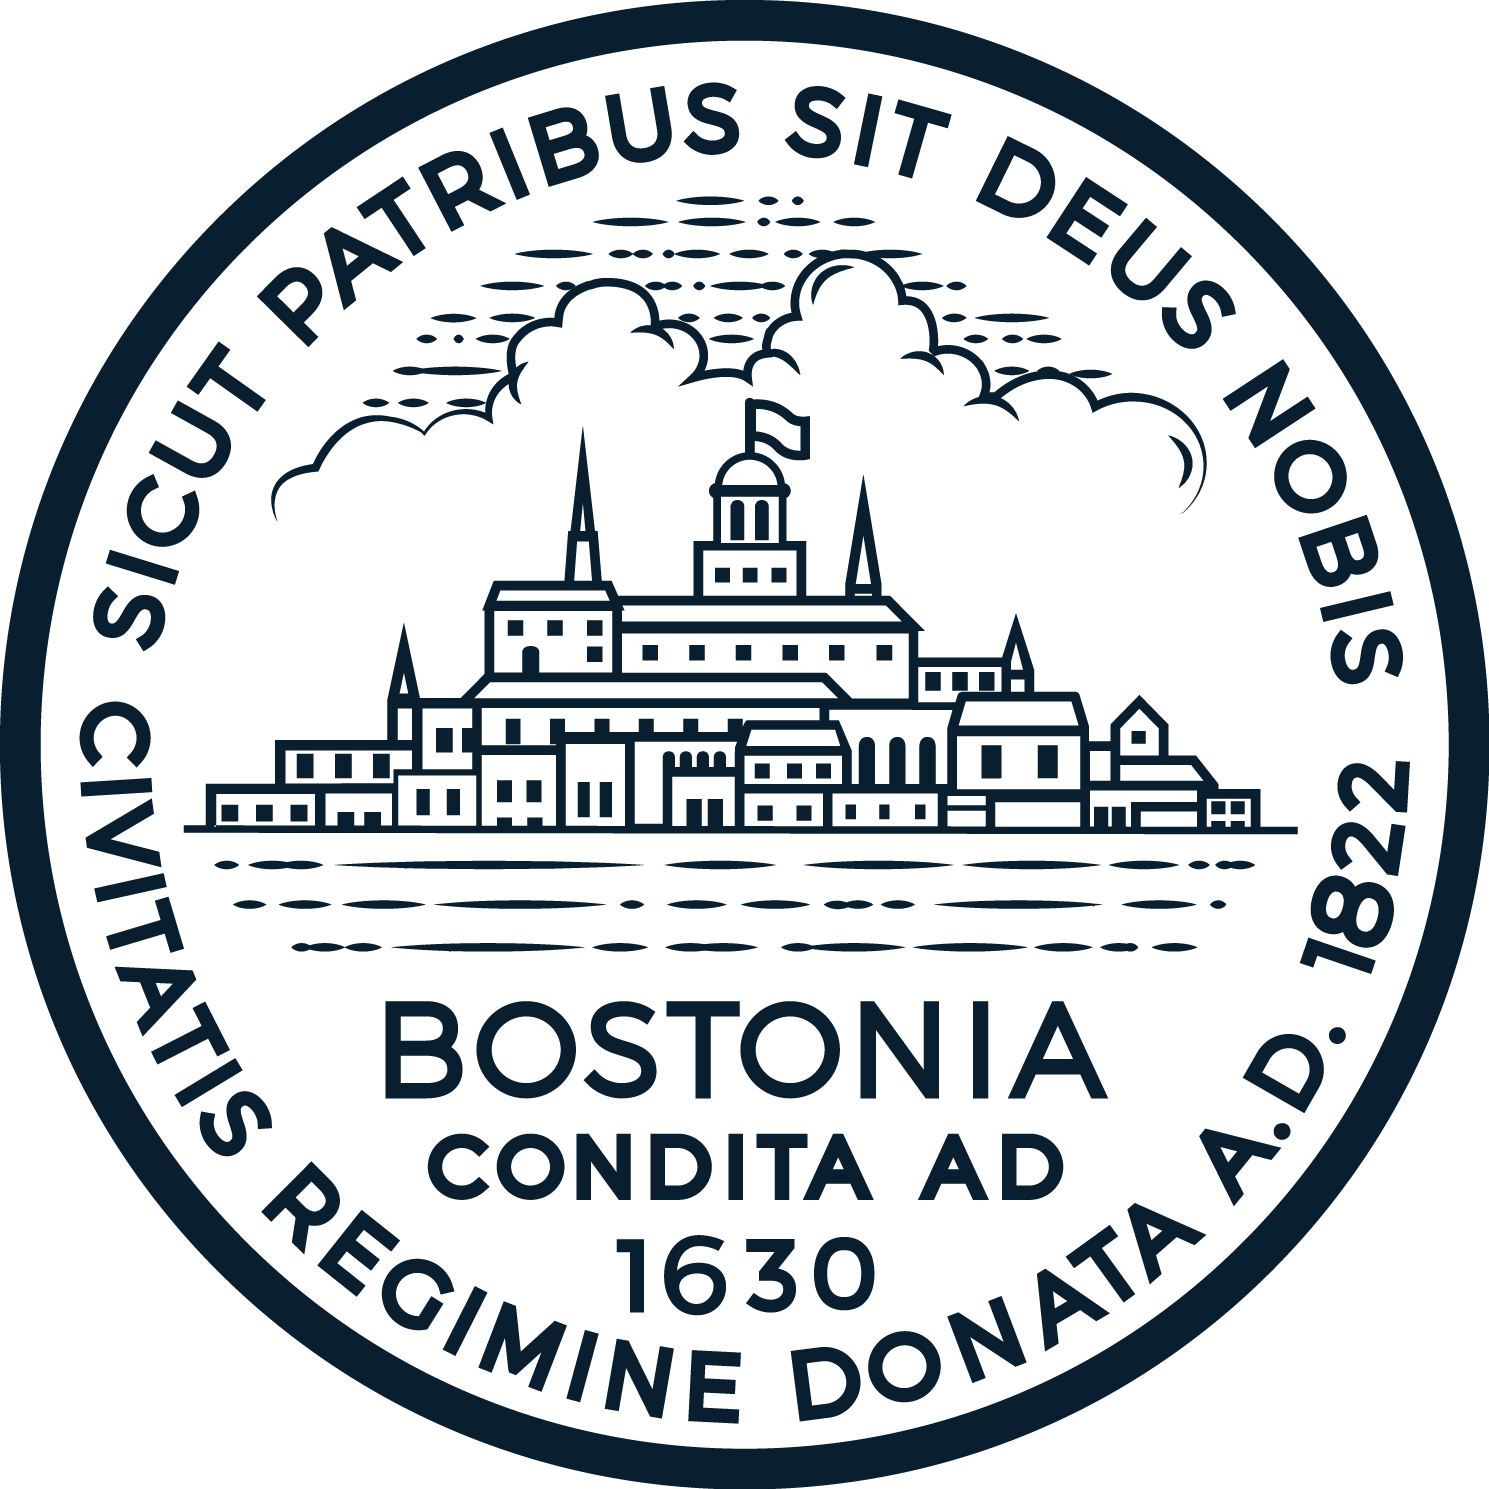 Boston Investor Relations - Official Seal or Logo